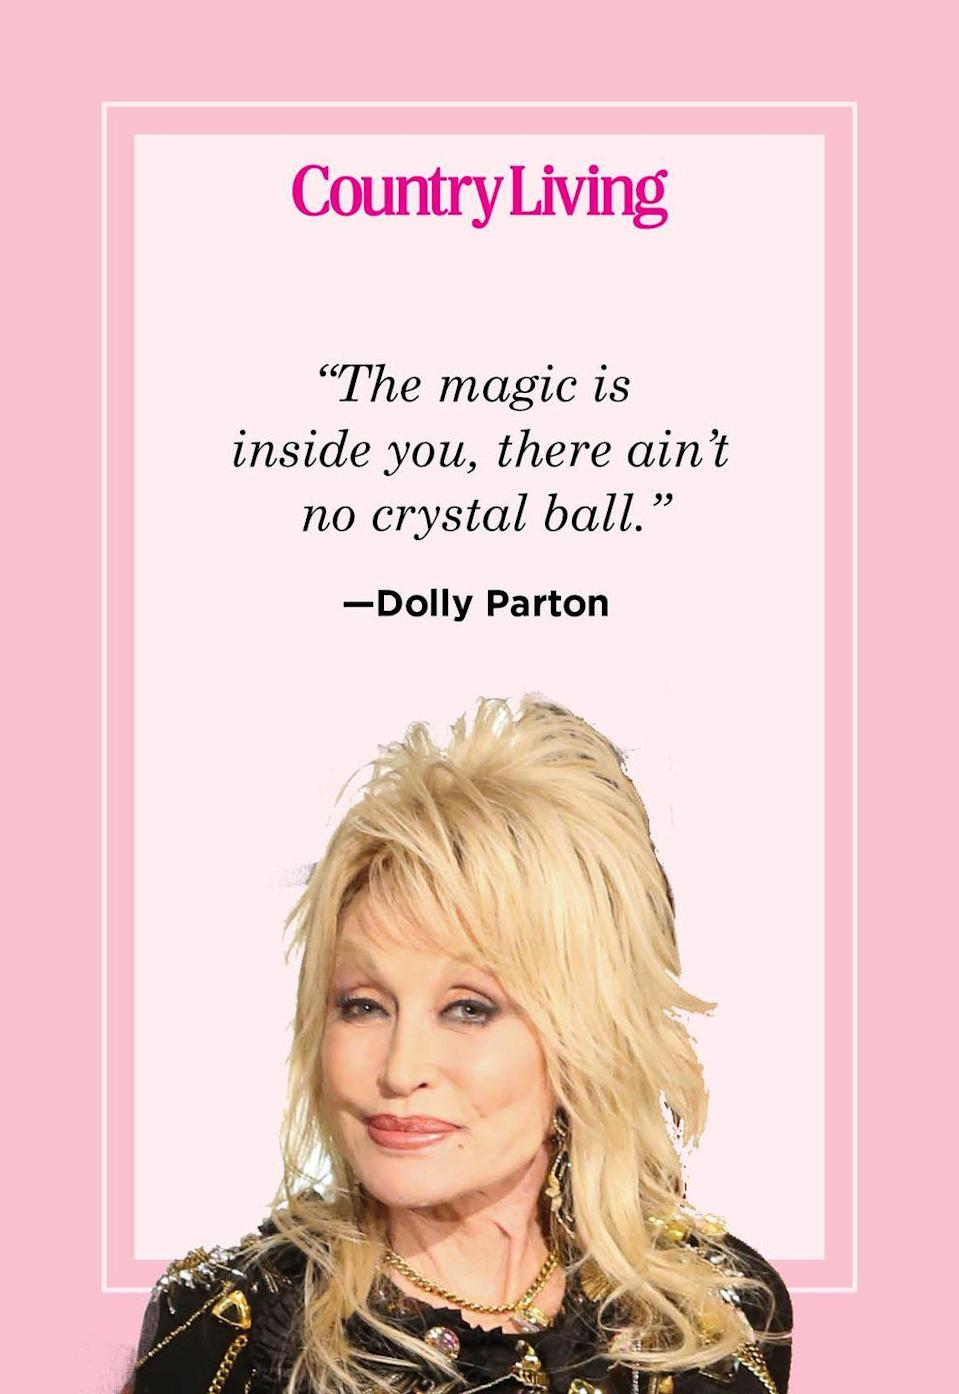 "<p>""The magic is inside you, there ain't no crystal ball.""</p>"